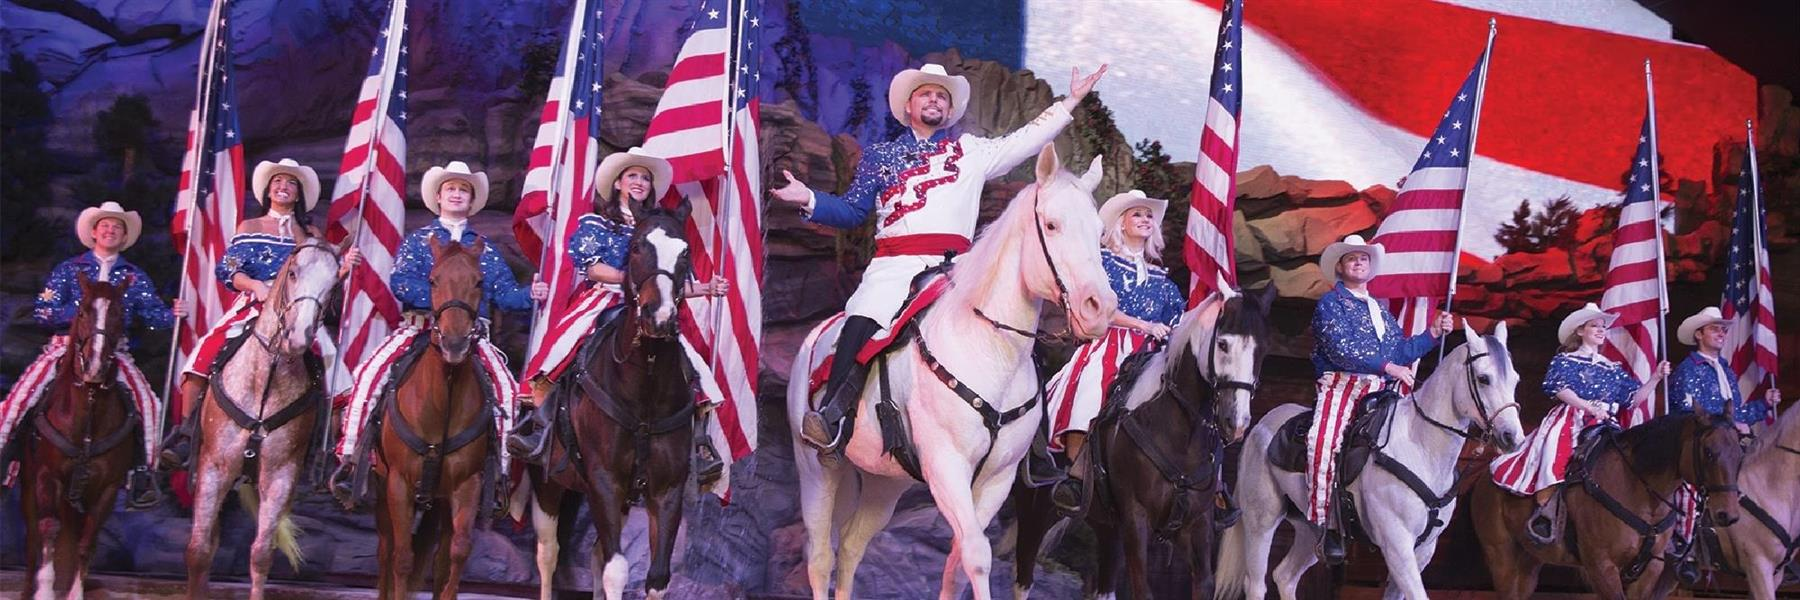 Dolly Parton's Stampede Dinner Attraction in Branson, Missouri